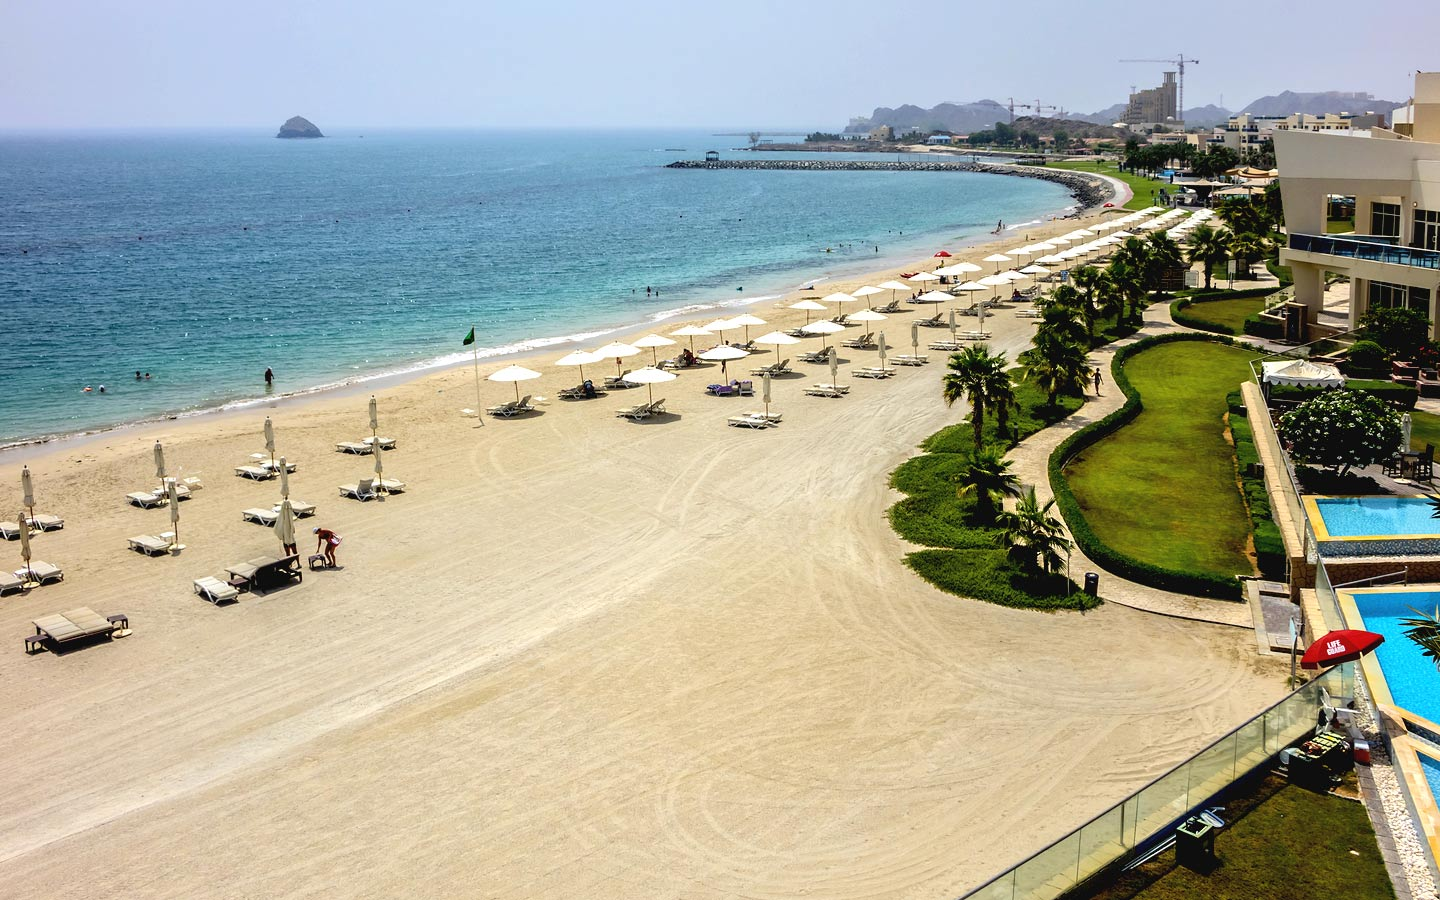 Hotels in Fujairah